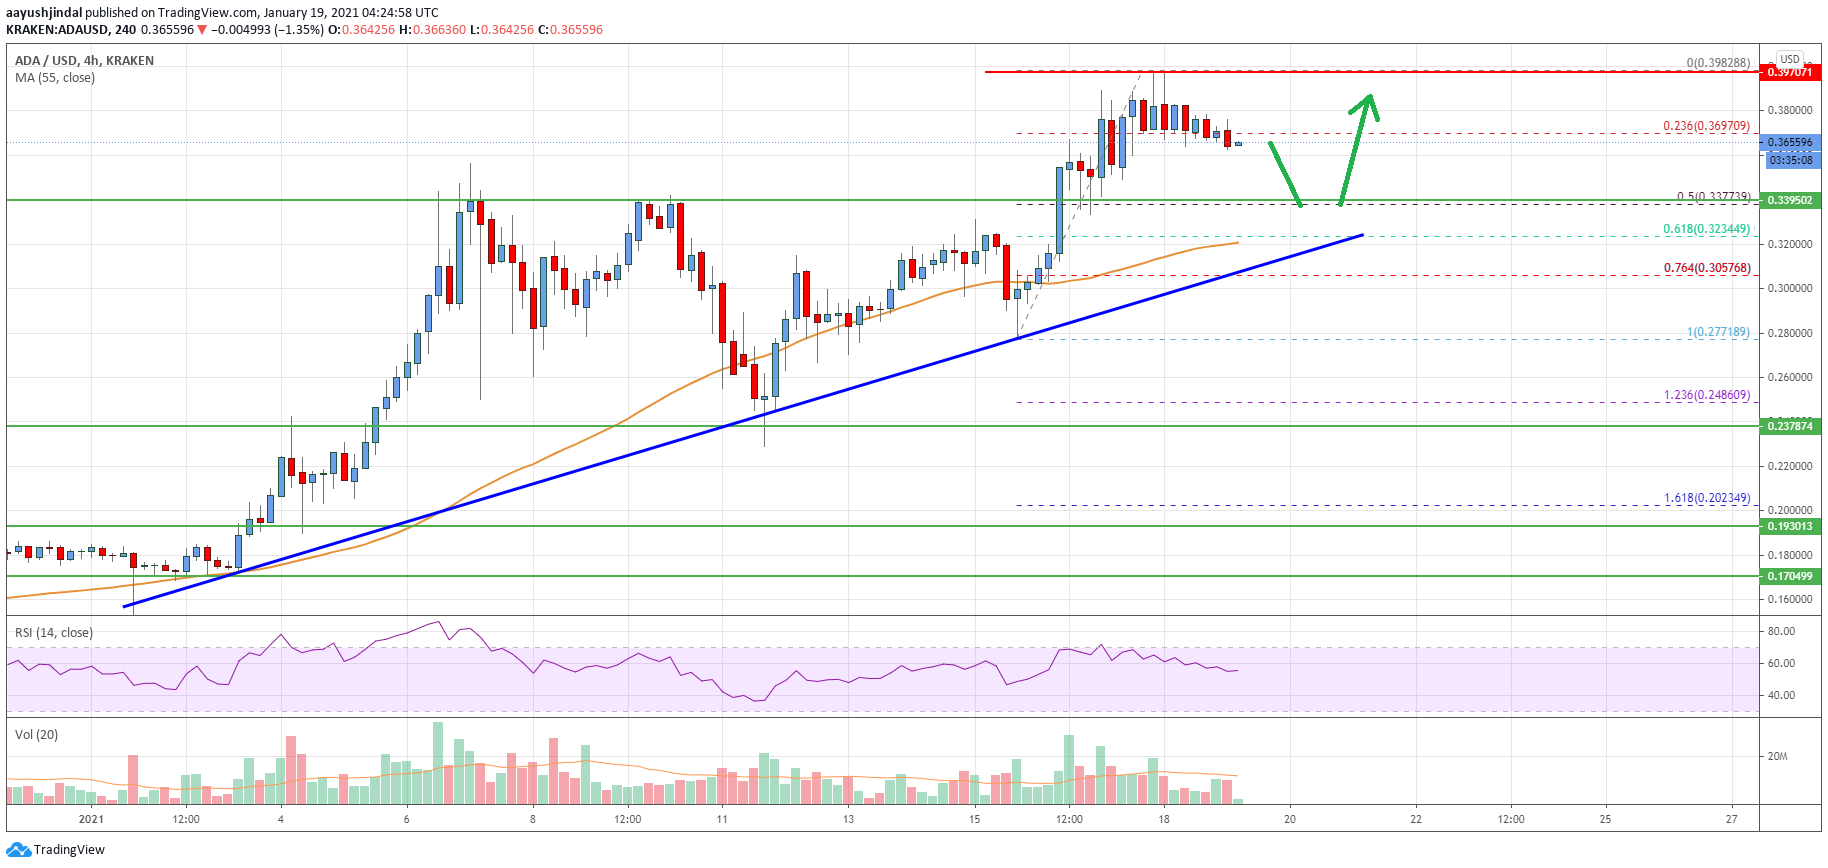 Cardano (ADA) Price Analysis: Dips Supported Near $0.32